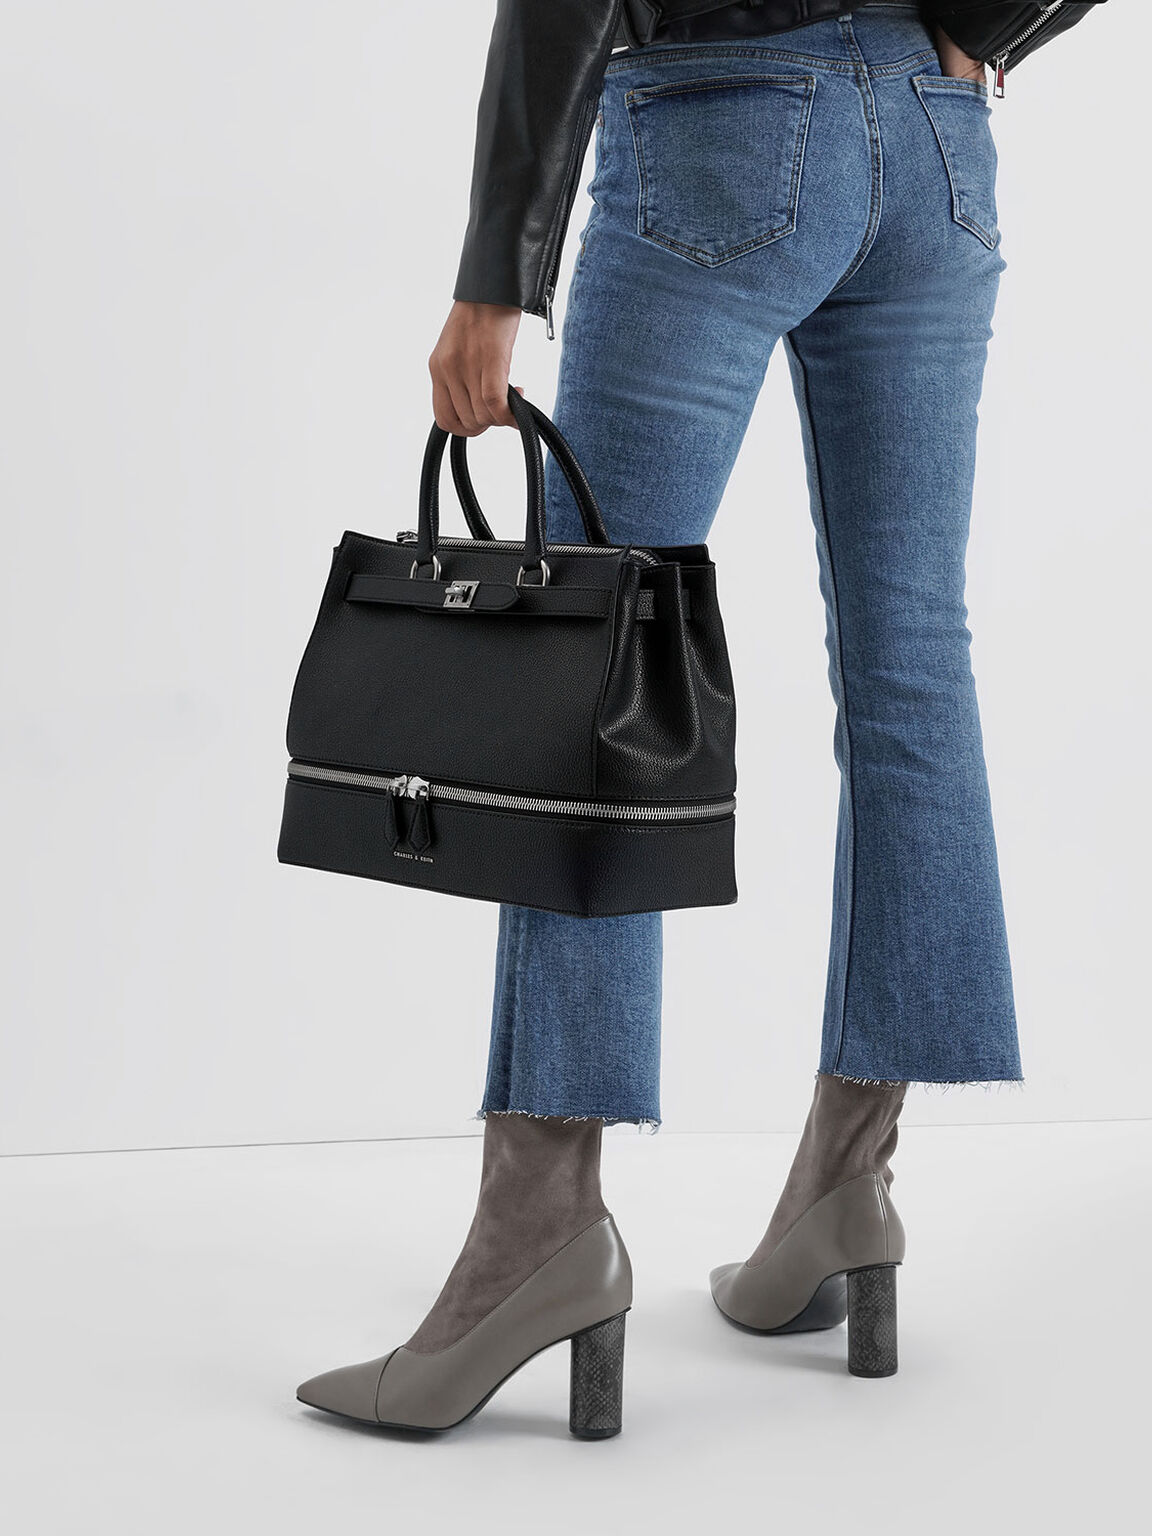 Large Two-Way Zip Tote Bag, Black, hi-res